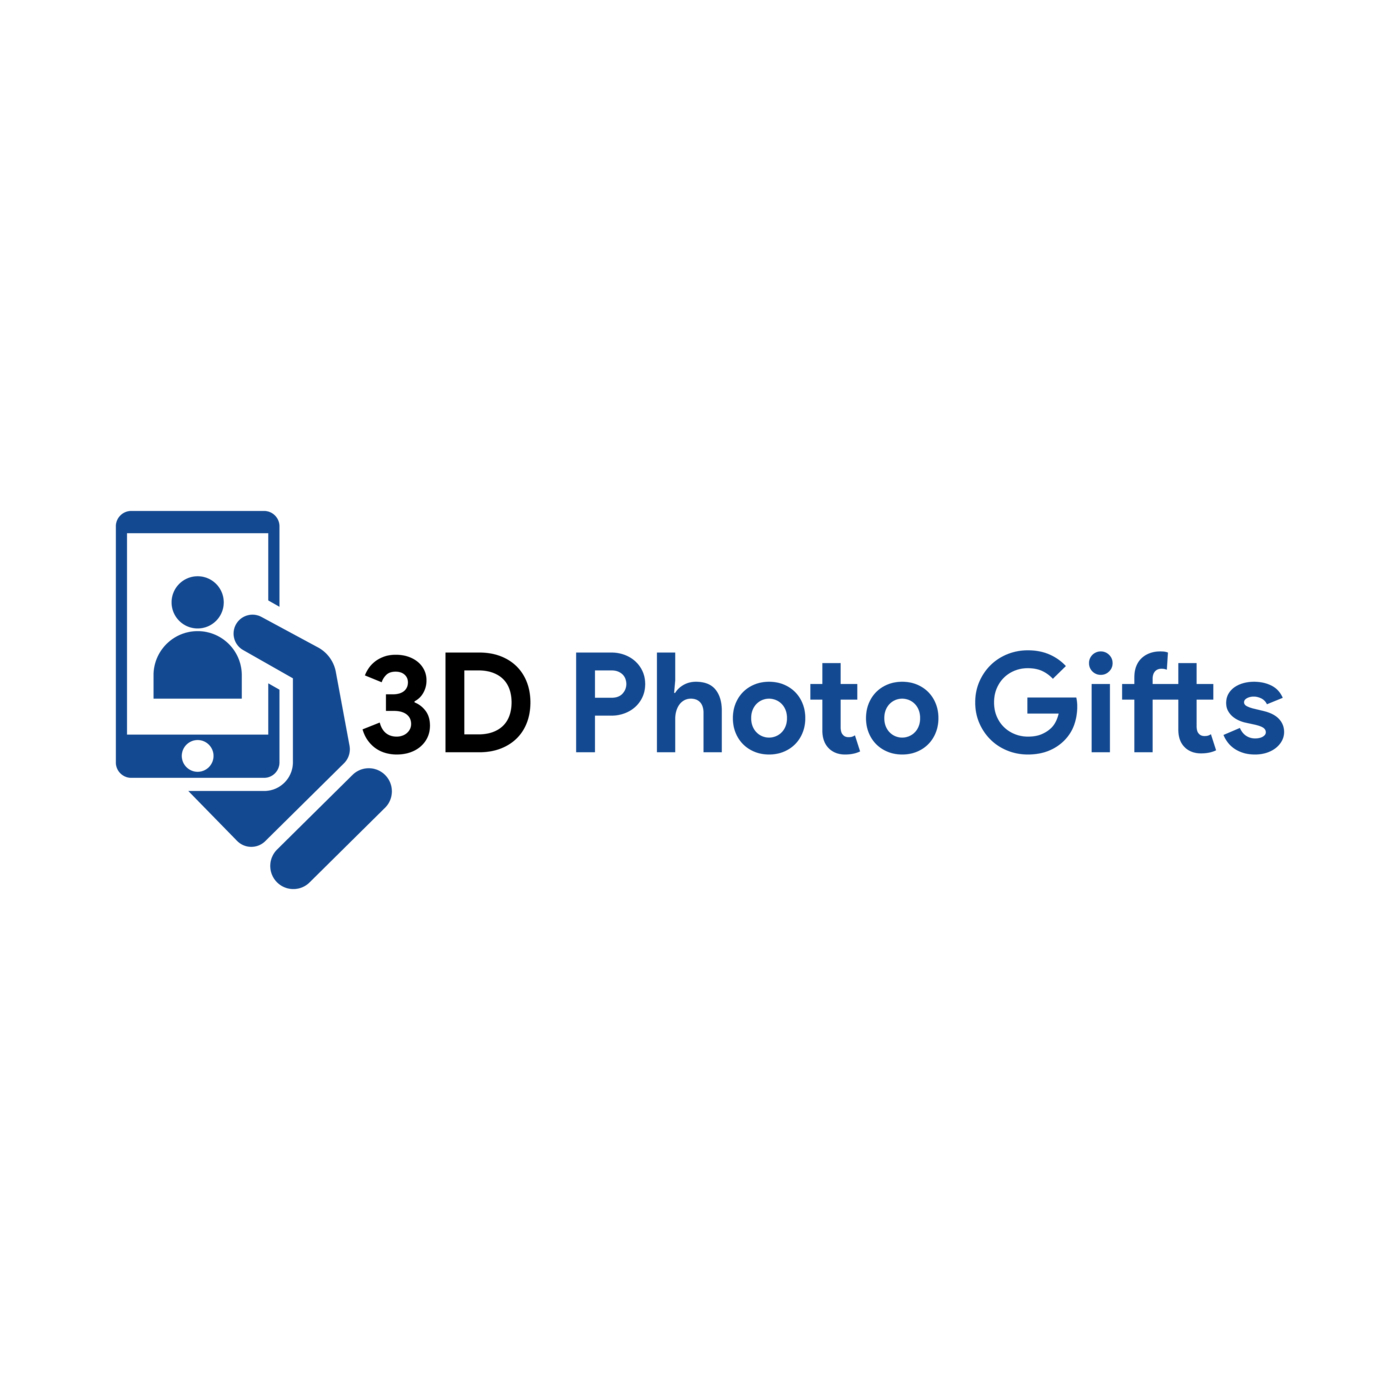 3D Photo Gifts